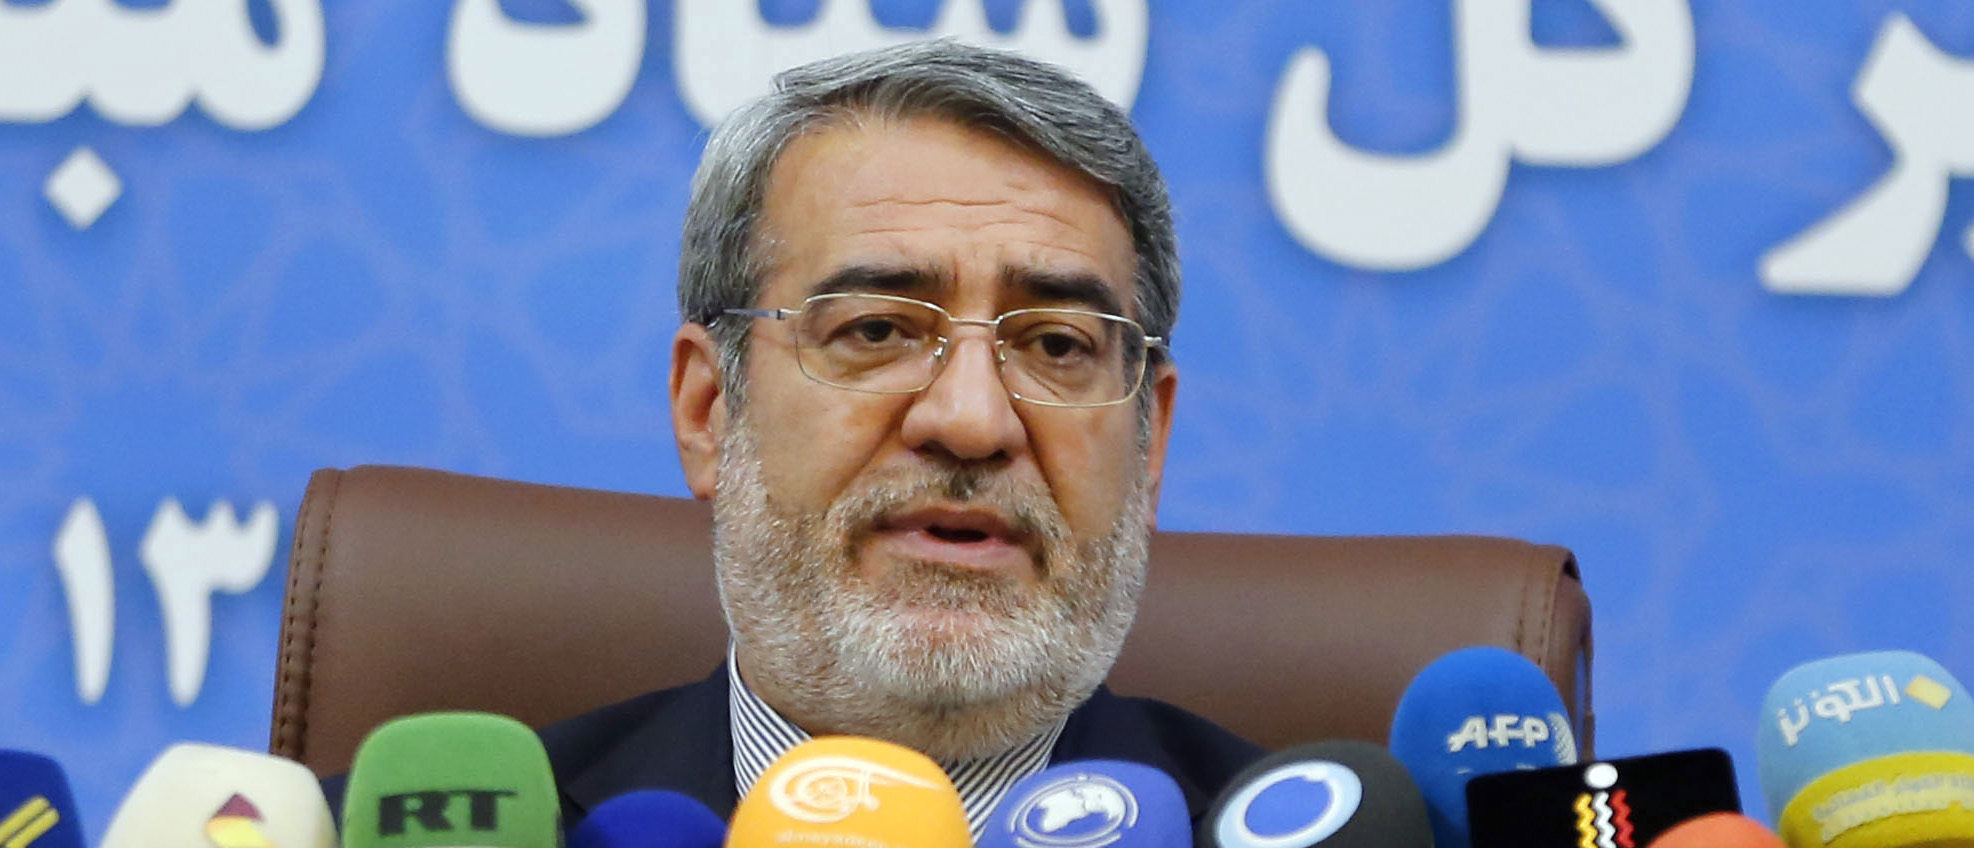 Iran's Interior Minister Abdolreza Rahmani Fazli speaks during a press conference in the capital Tehran on July 1, 2018. (Photo by ATTA KENARE / AFP) (Photo credit should read ATTA KENARE/AFP via Getty Images)